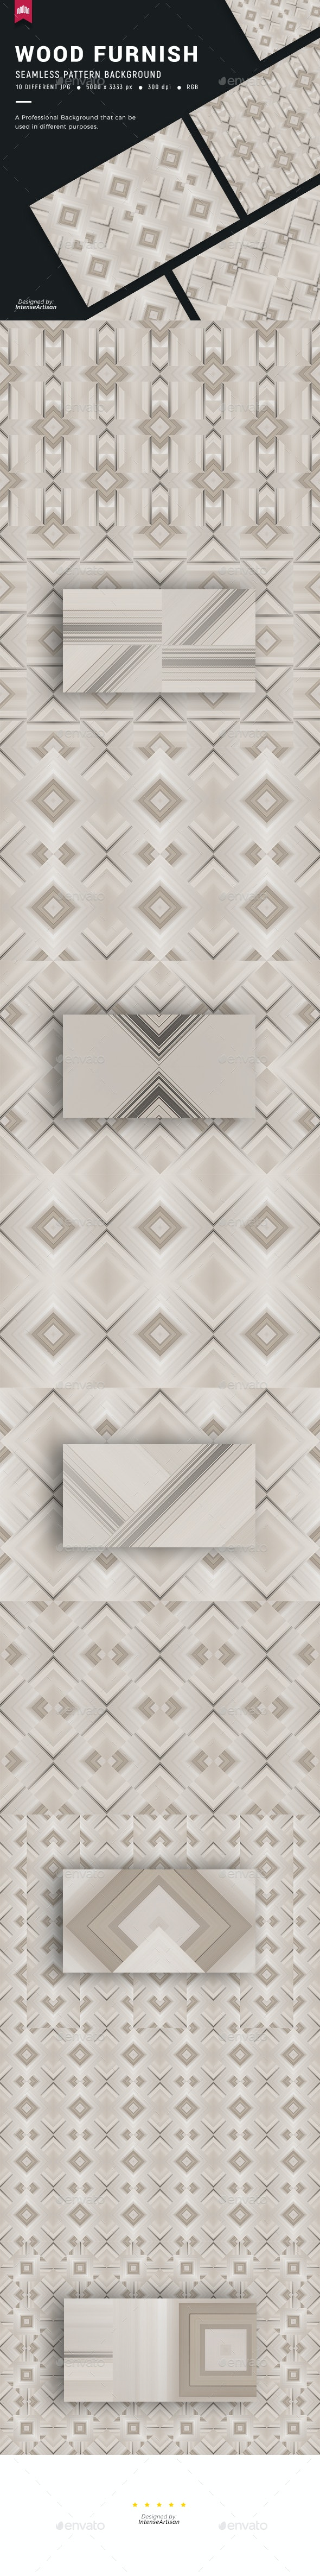 Wood Furnish Seamless Pattern Background - Patterns Backgrounds